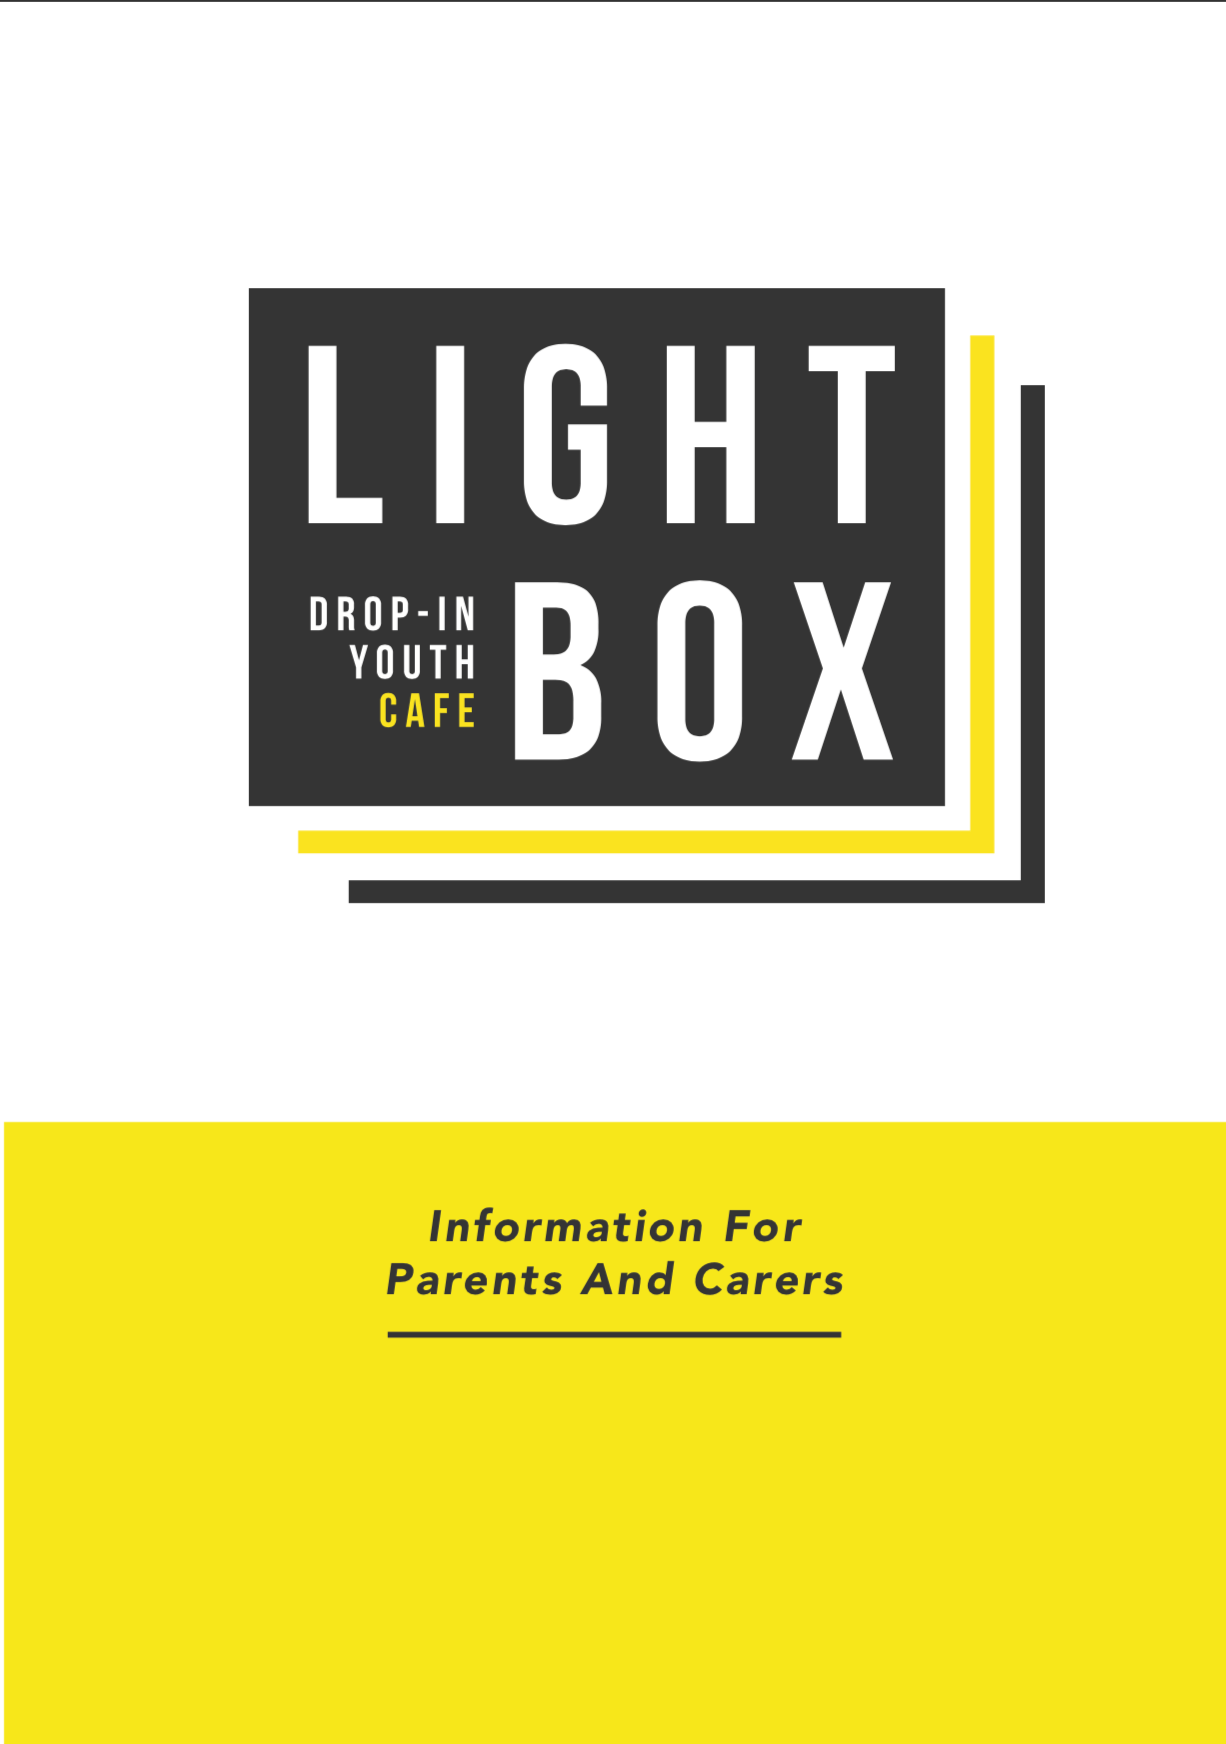 Lightbox info for parents page 1